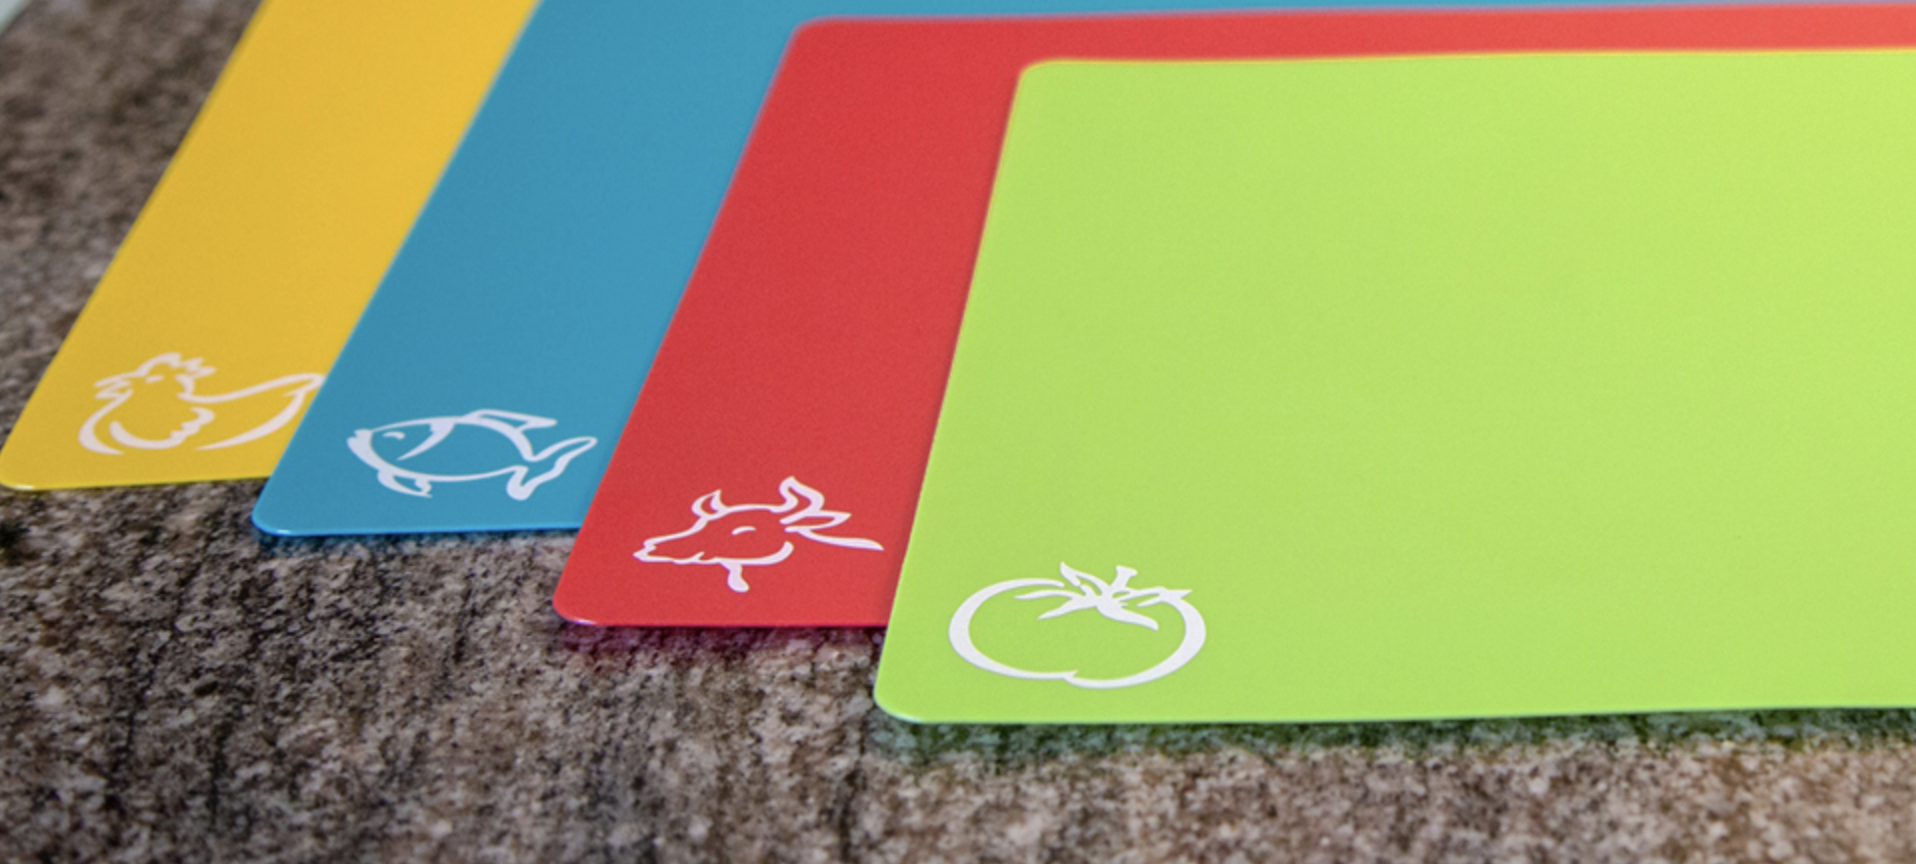 Yellow, blue, red, and green mats with different food labels